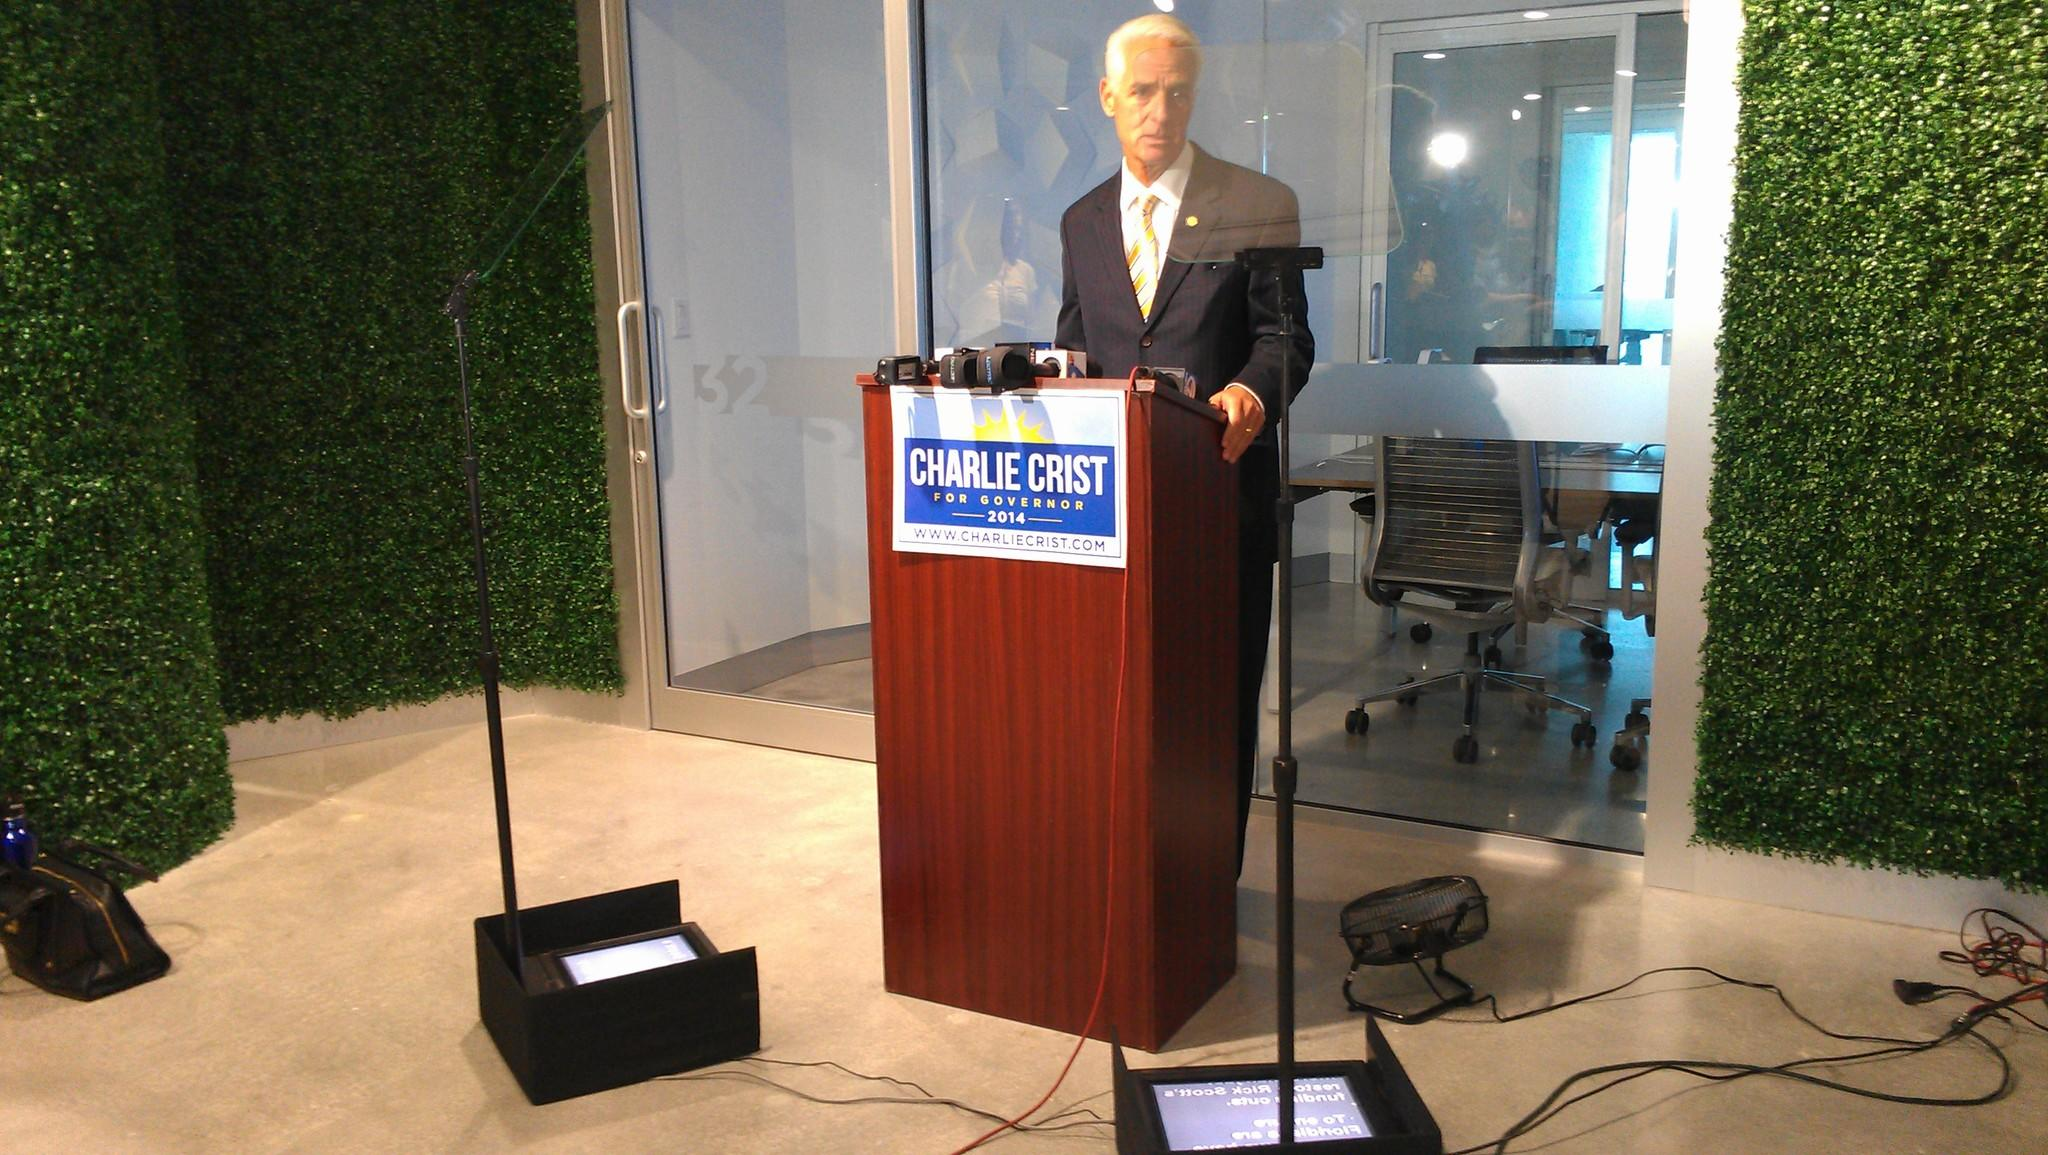 Democratic candidate Charlie Crist delivers remarks from a teleprompter during a news conference in Fort Lauderdale on Aug. 5, 2014. (Photo by Anthony Man)